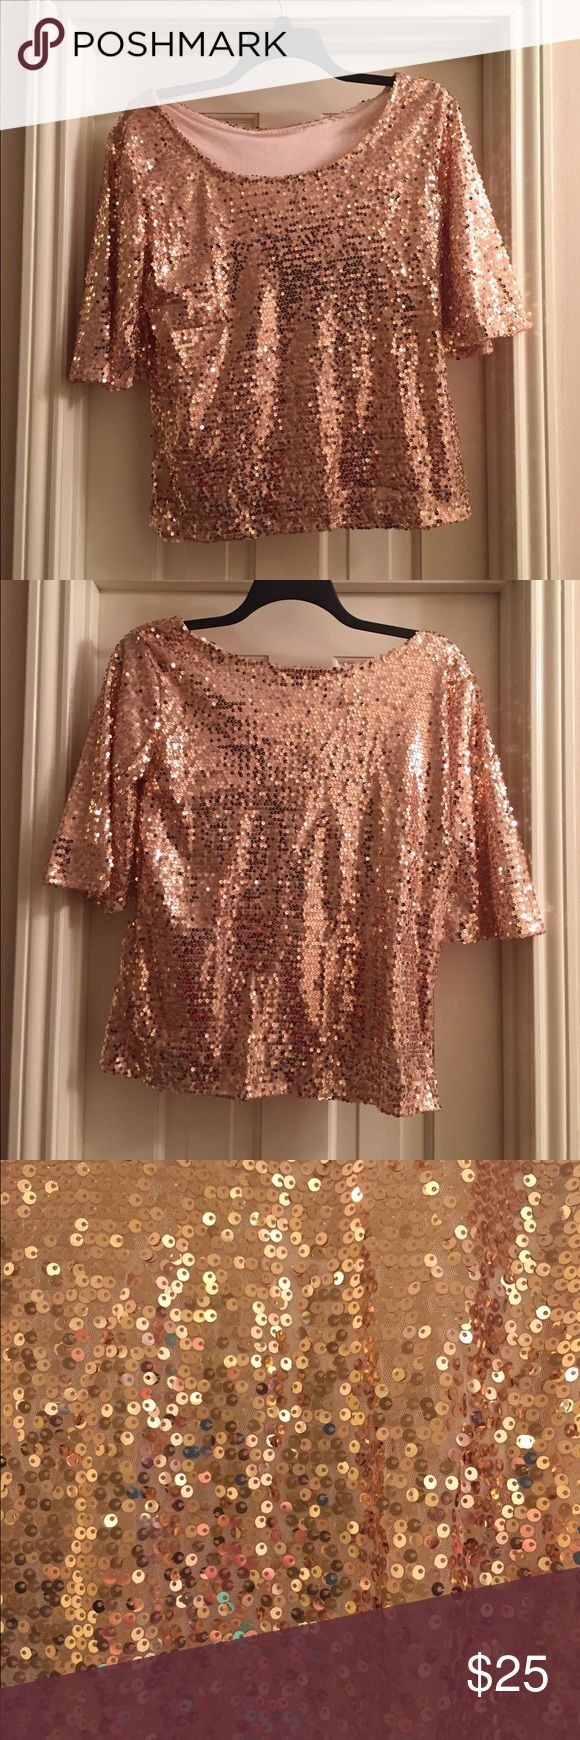 NWOT Rose gold sequin shirt I adore this shirt but it was too big for me when I ordered it. Perfect for holiday parties!! Tops Blouses